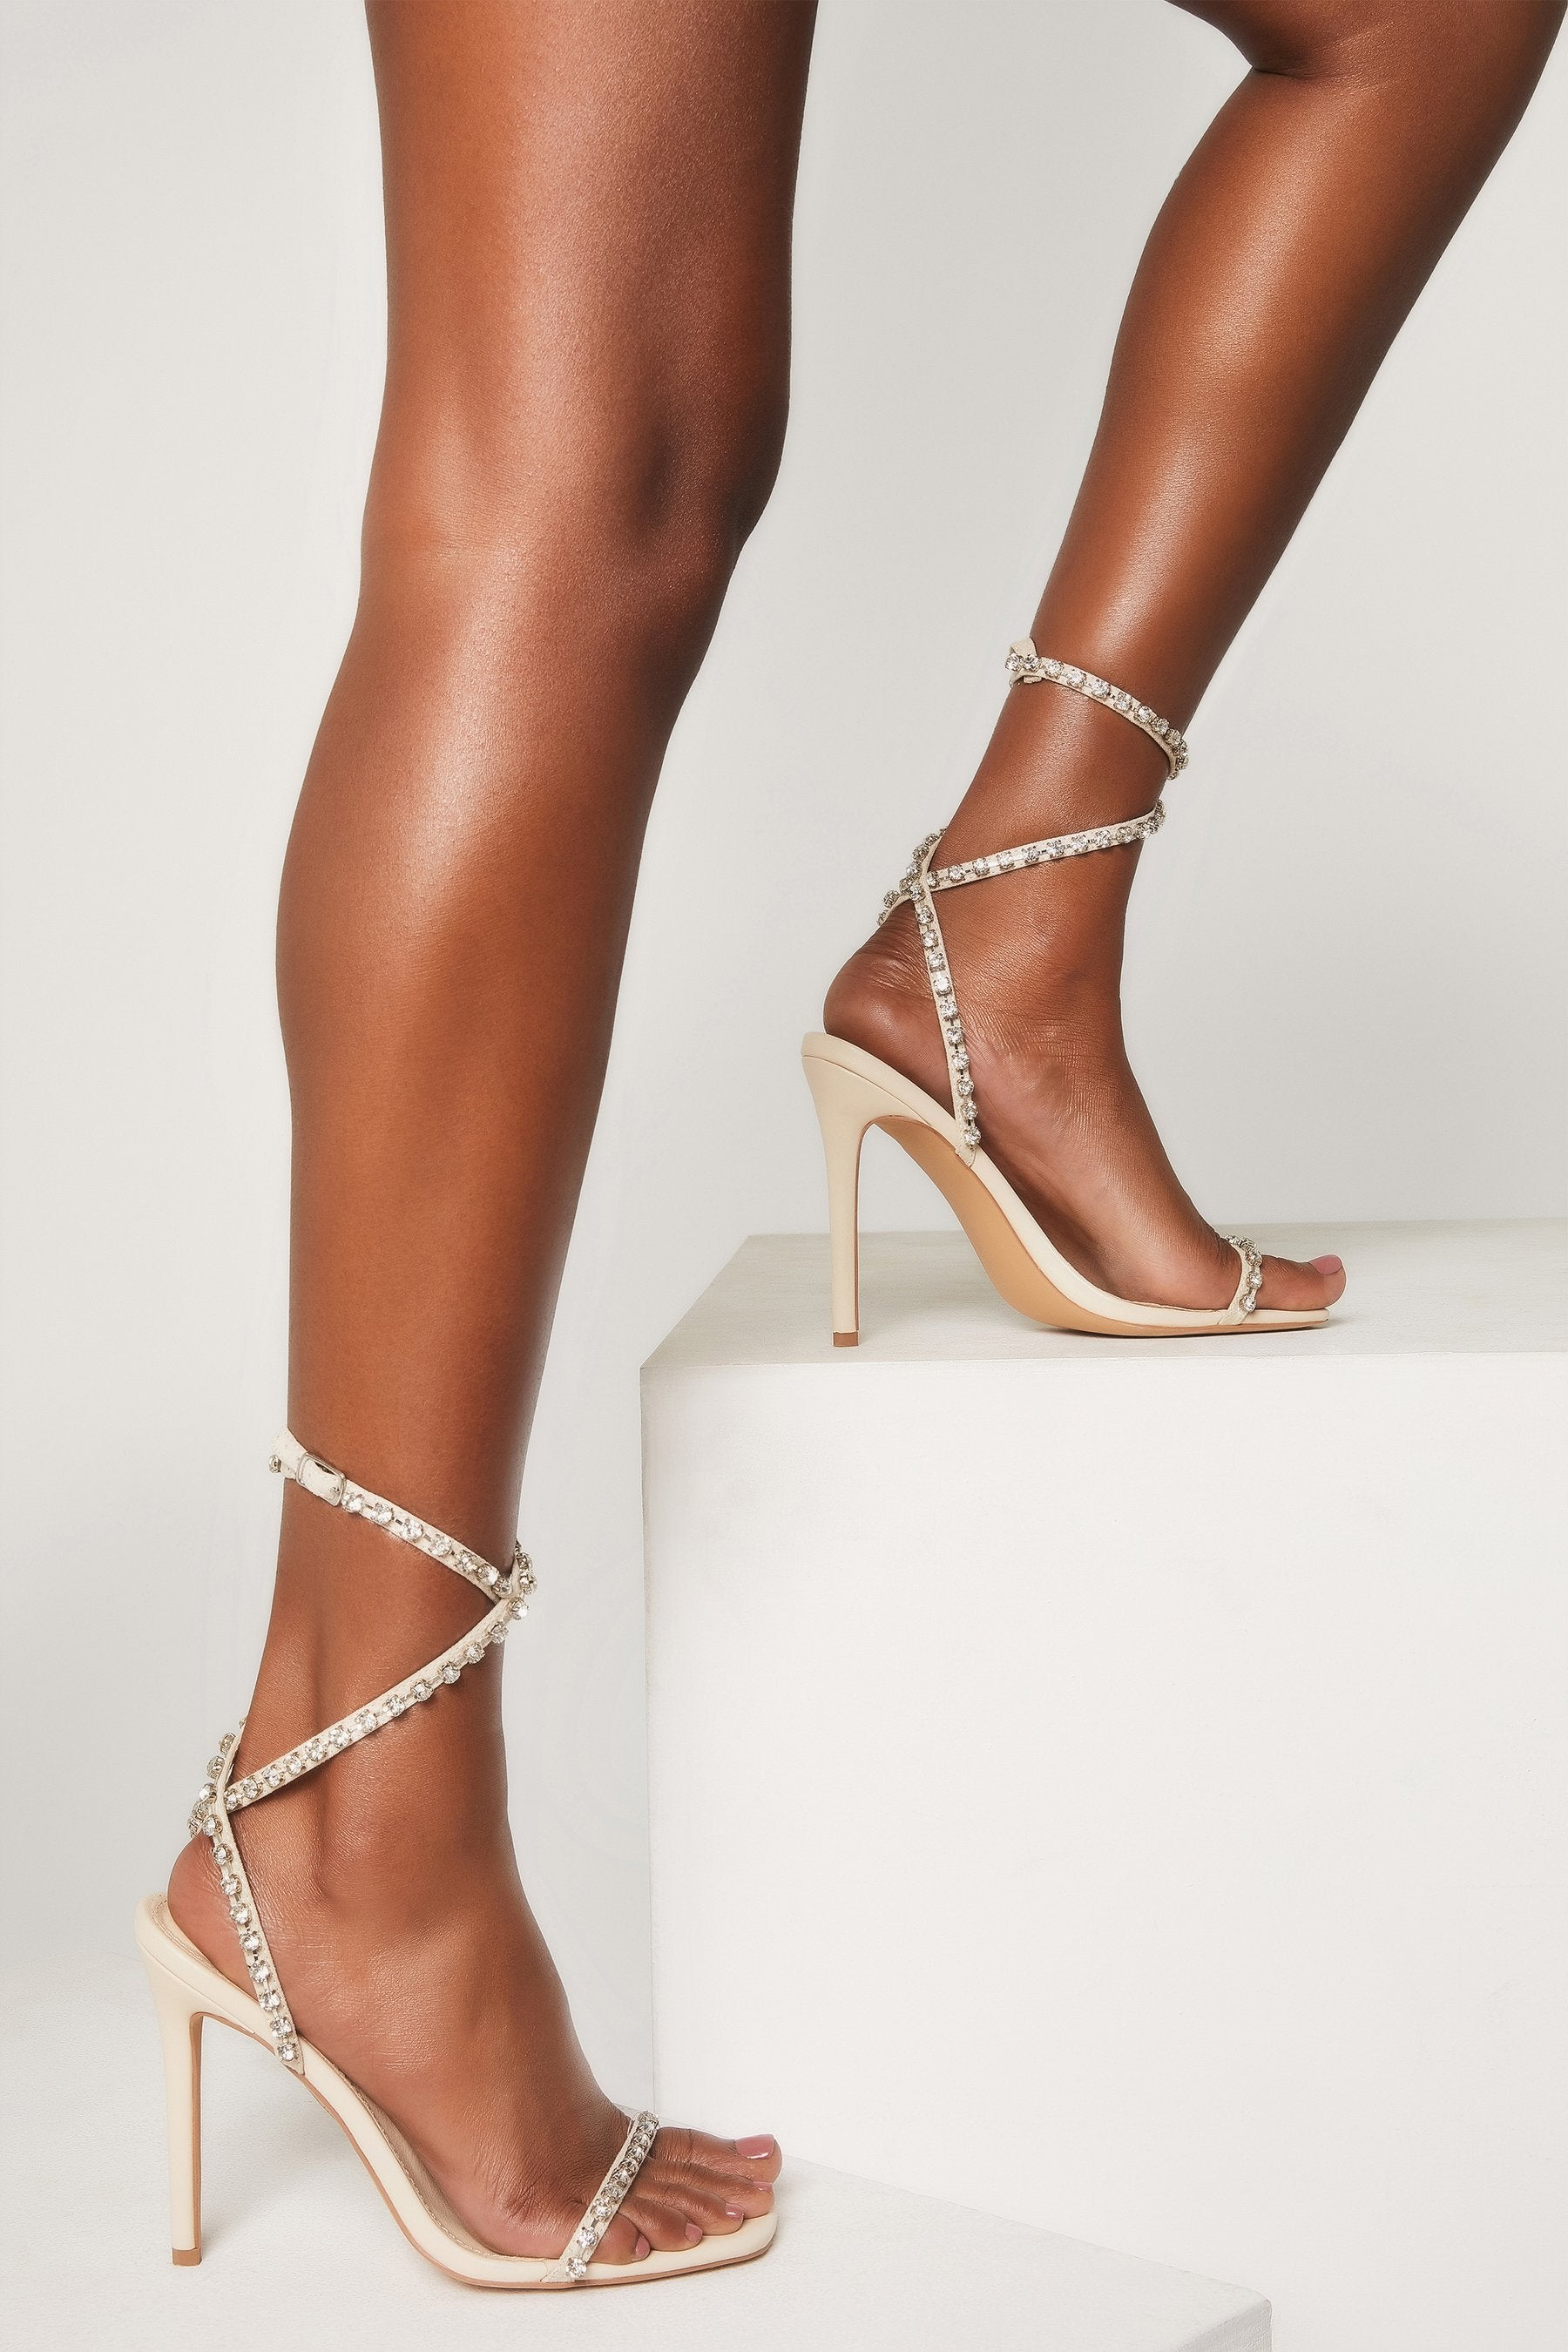 shoes, white, perfect, strappy heels, high heels, summer